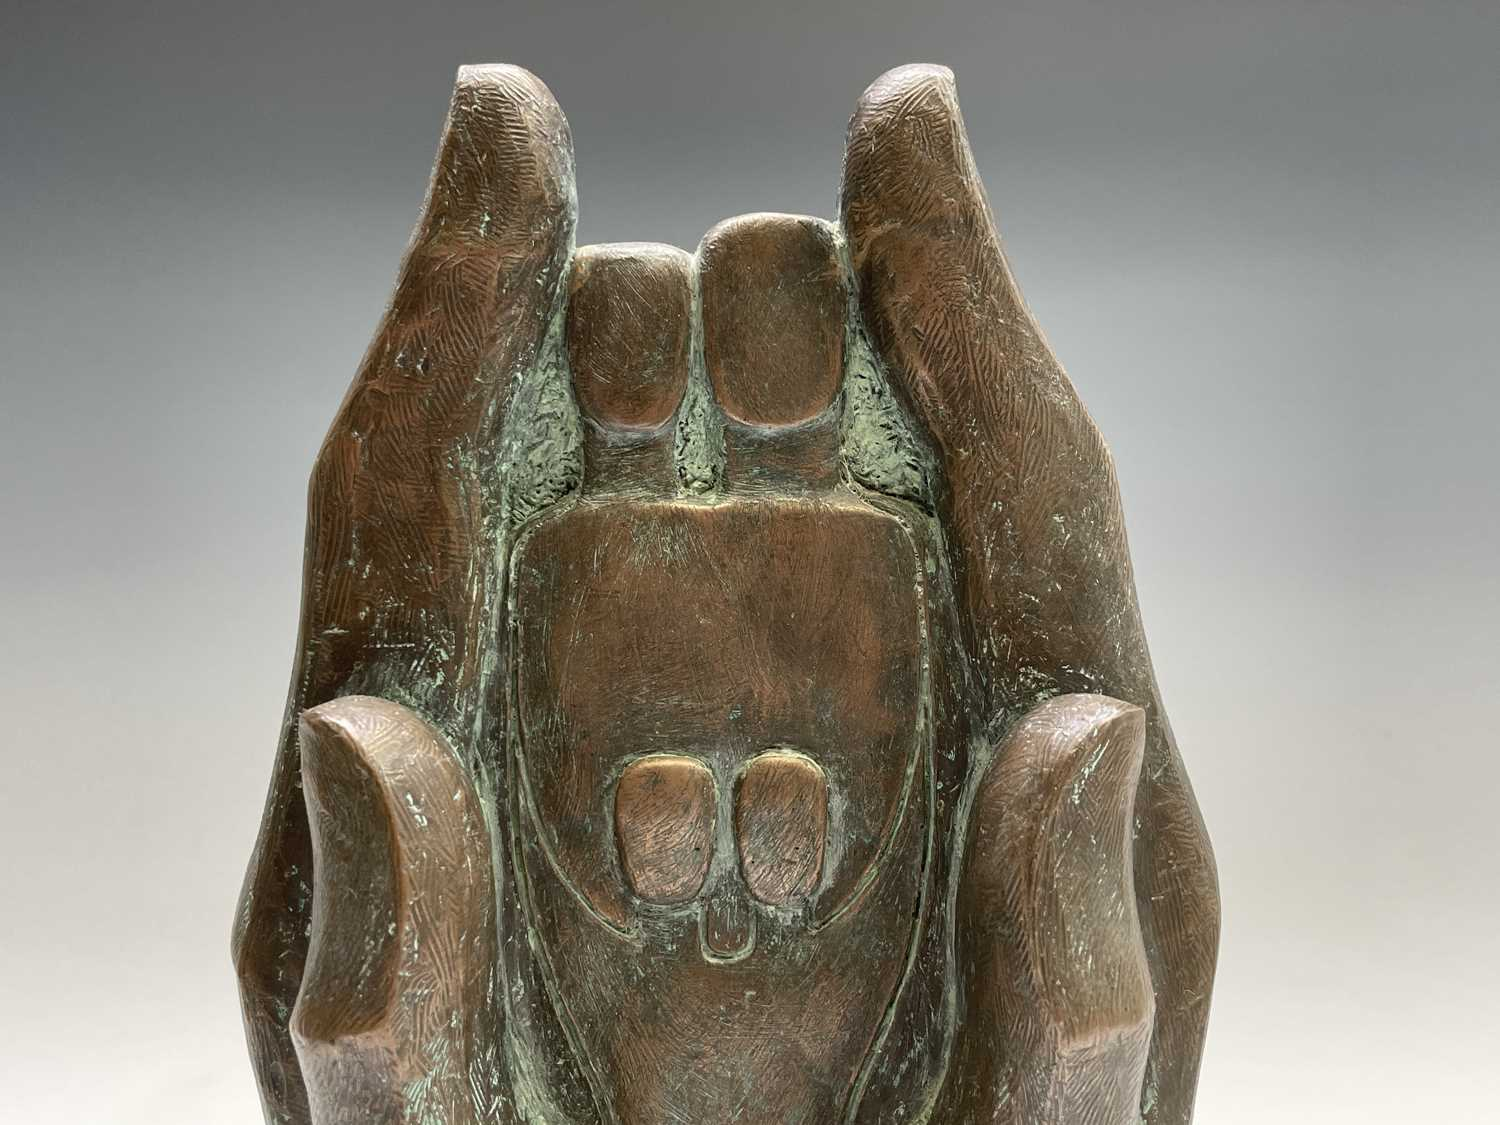 Alec WILES (1924)Hands Cold cast bronze sculpture Signed Height 34cm including wooden base - Image 3 of 9